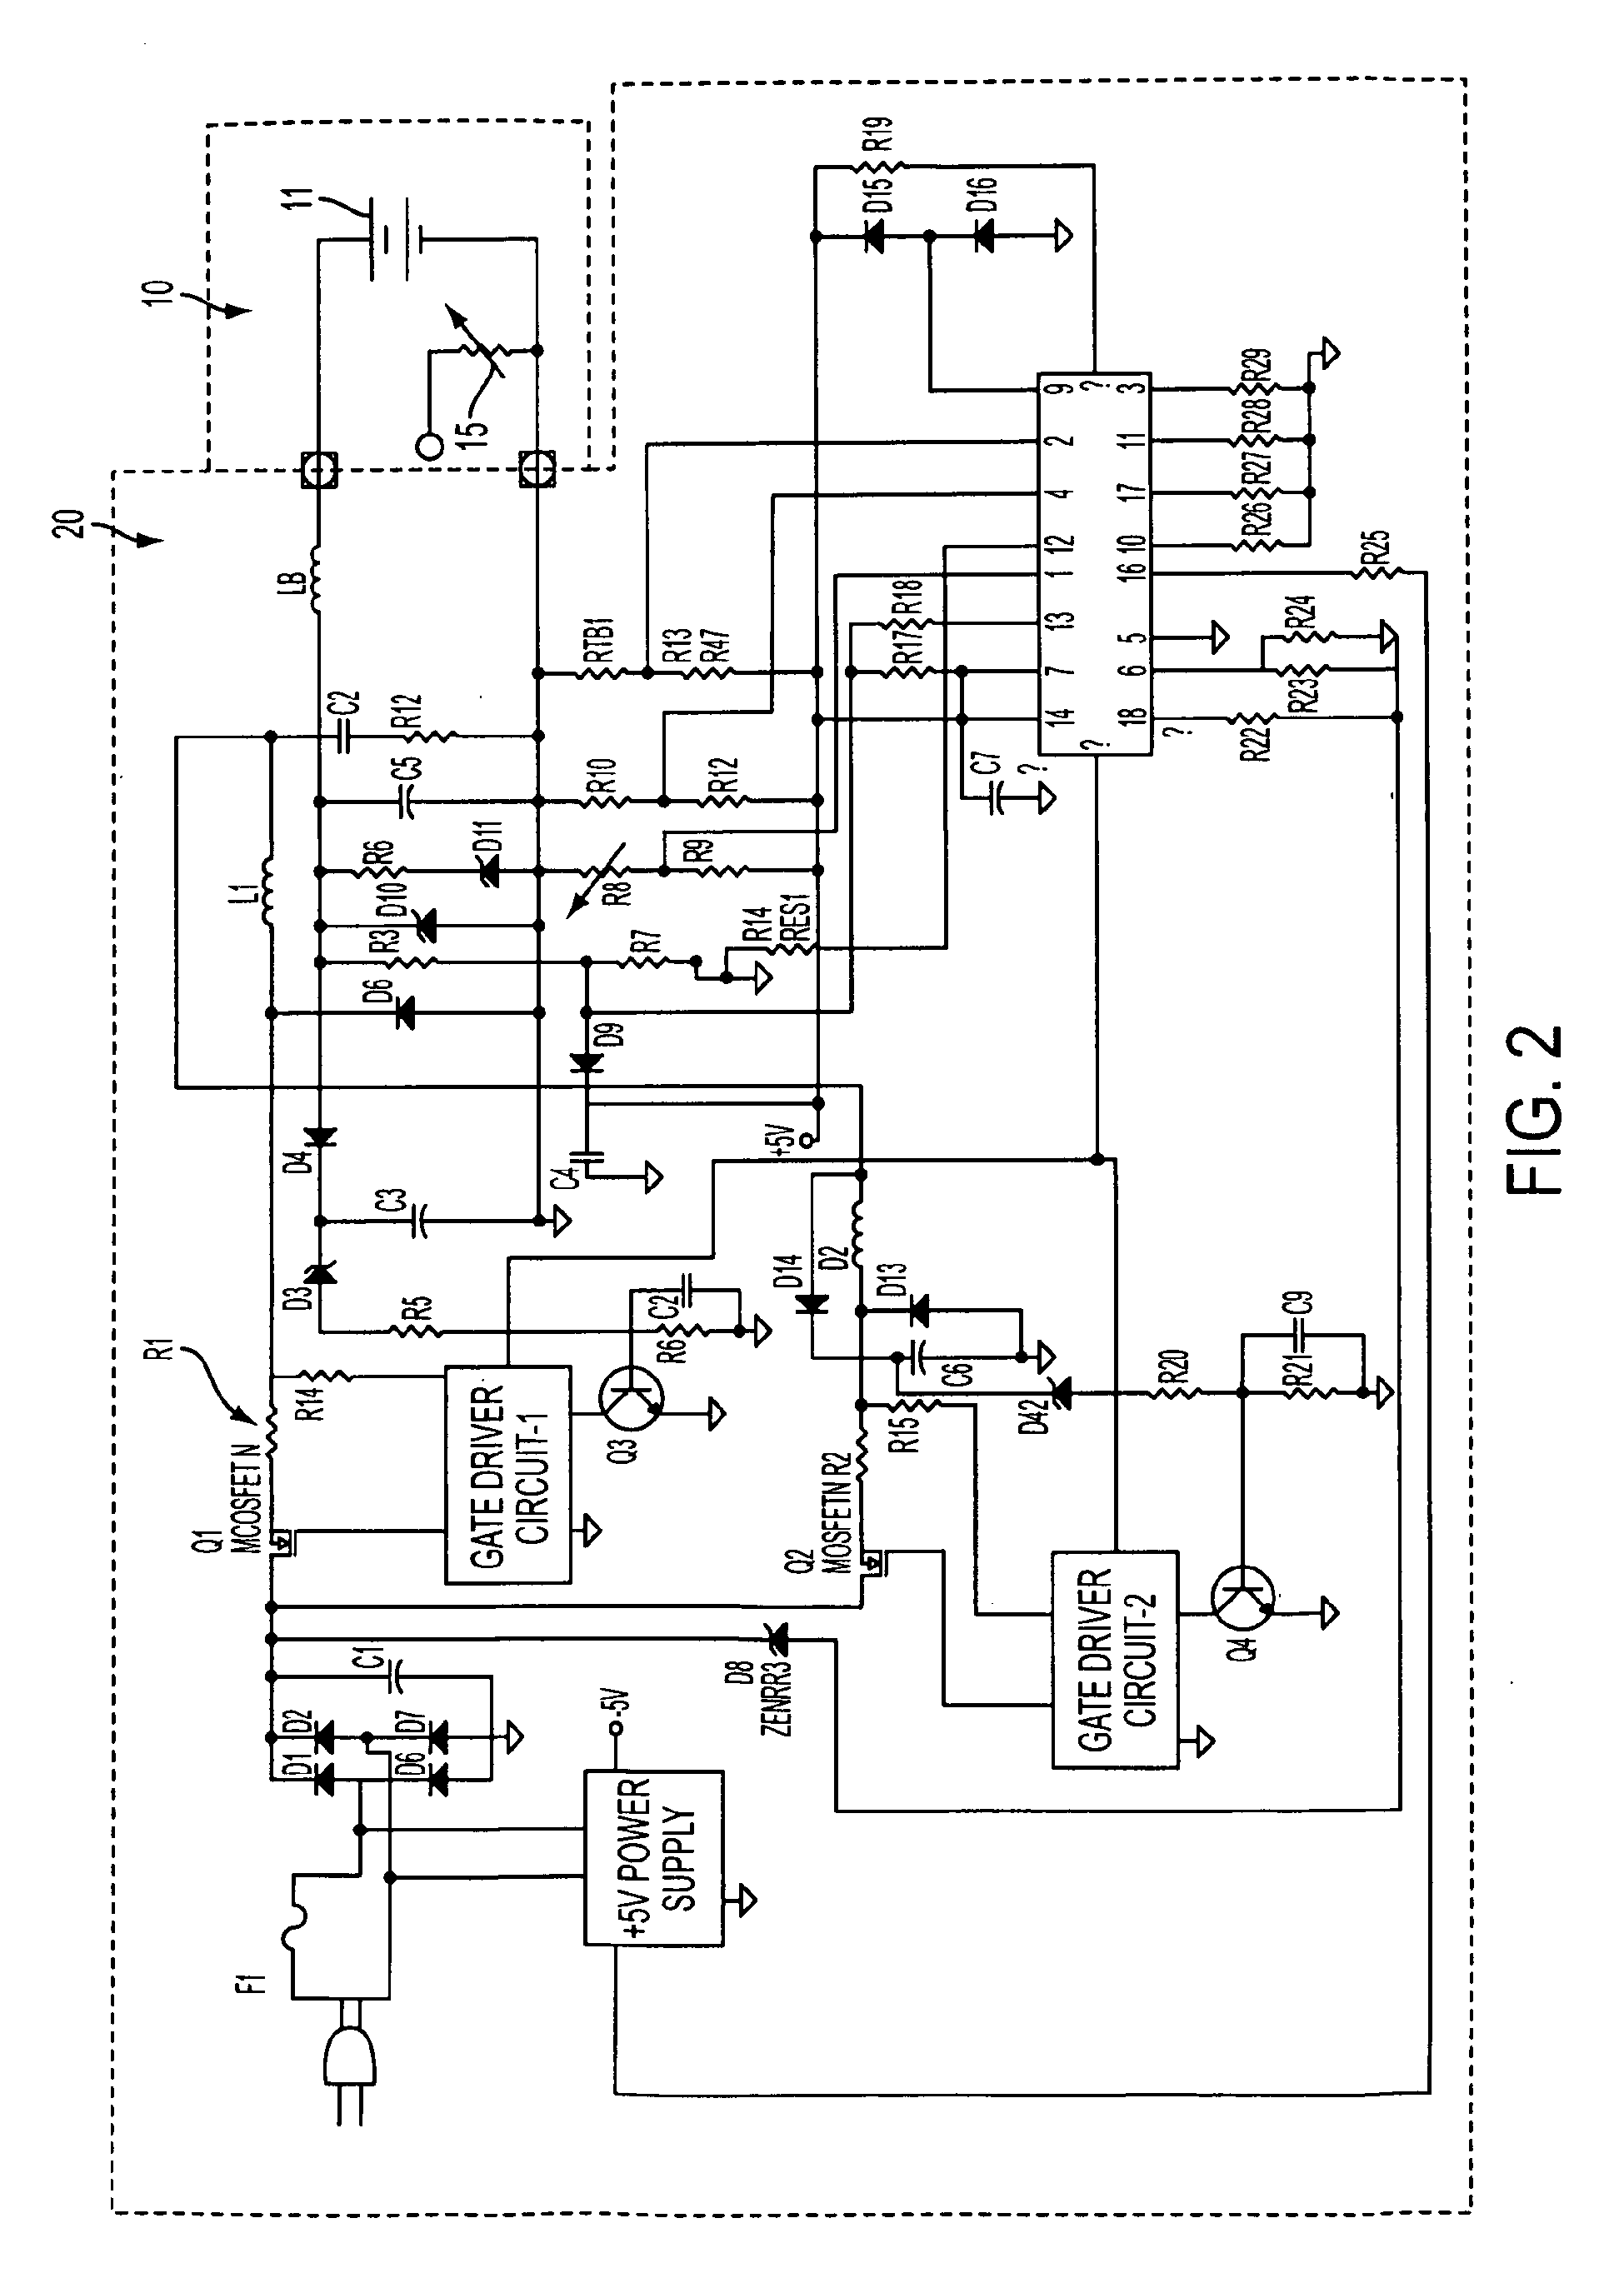 battery schematic a1151